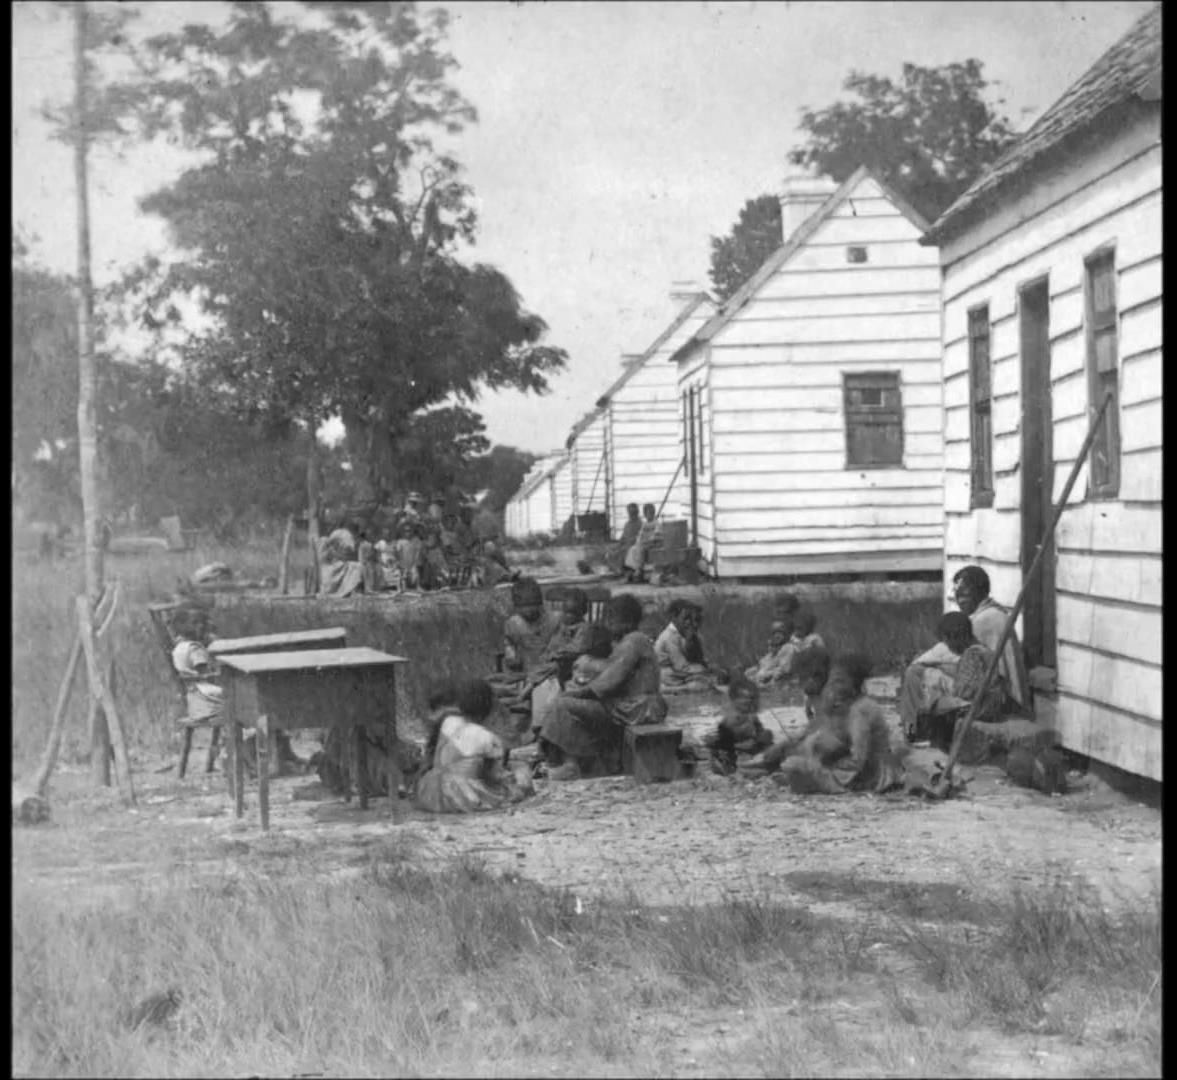 Rare Photos of Slaves in South Carolina From the 1850s1860s_06